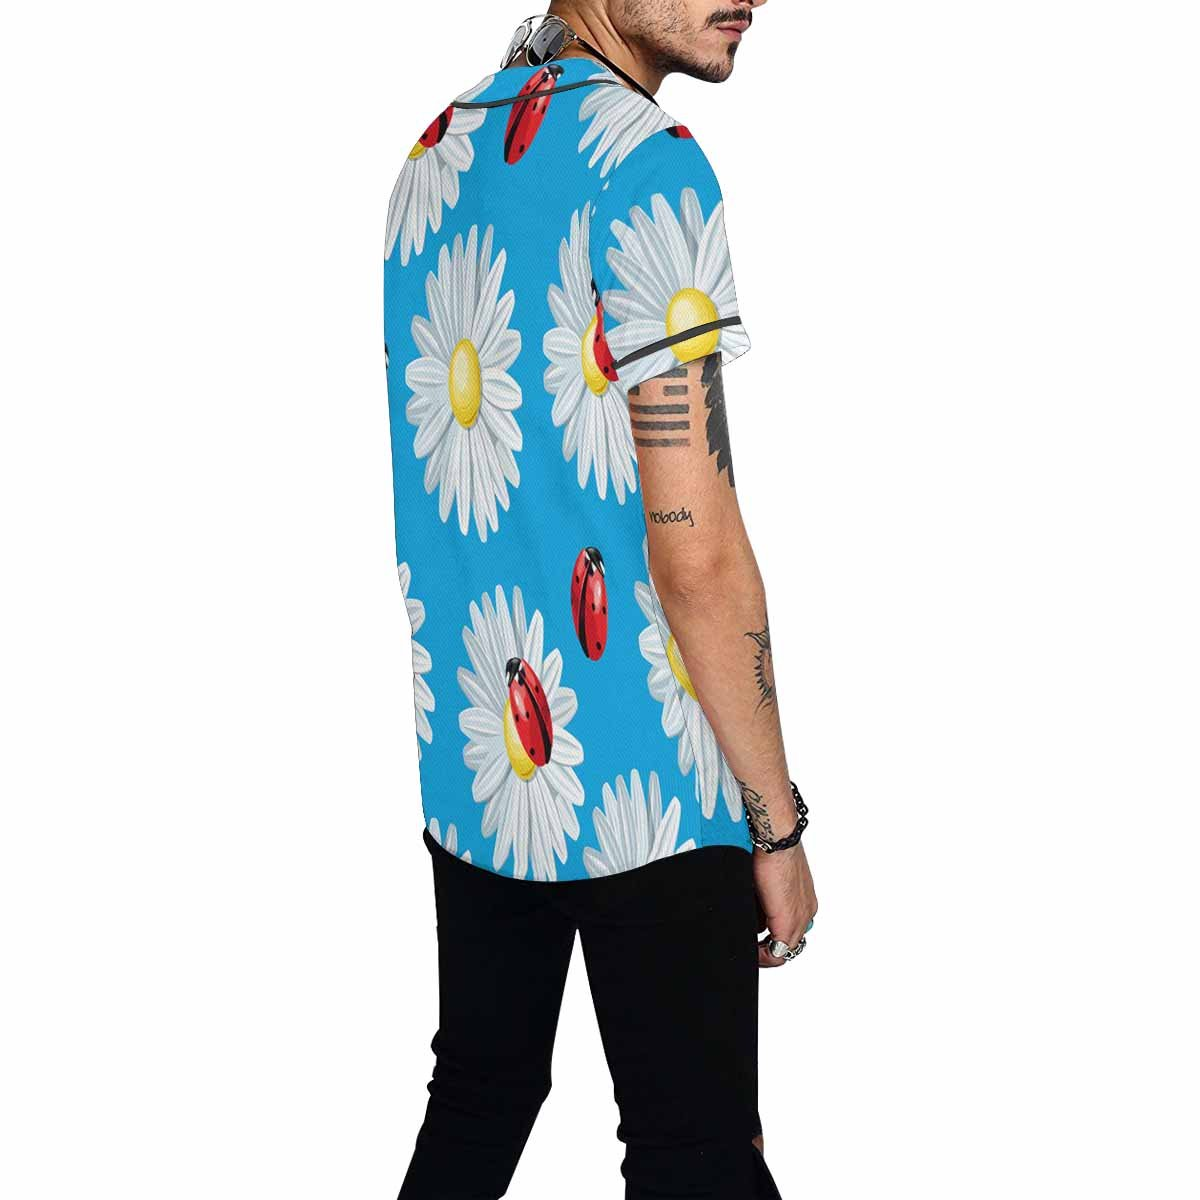 INTERESTPRINT Mens Button Down Baseball Jersey Colorful Ladybug and Camomile